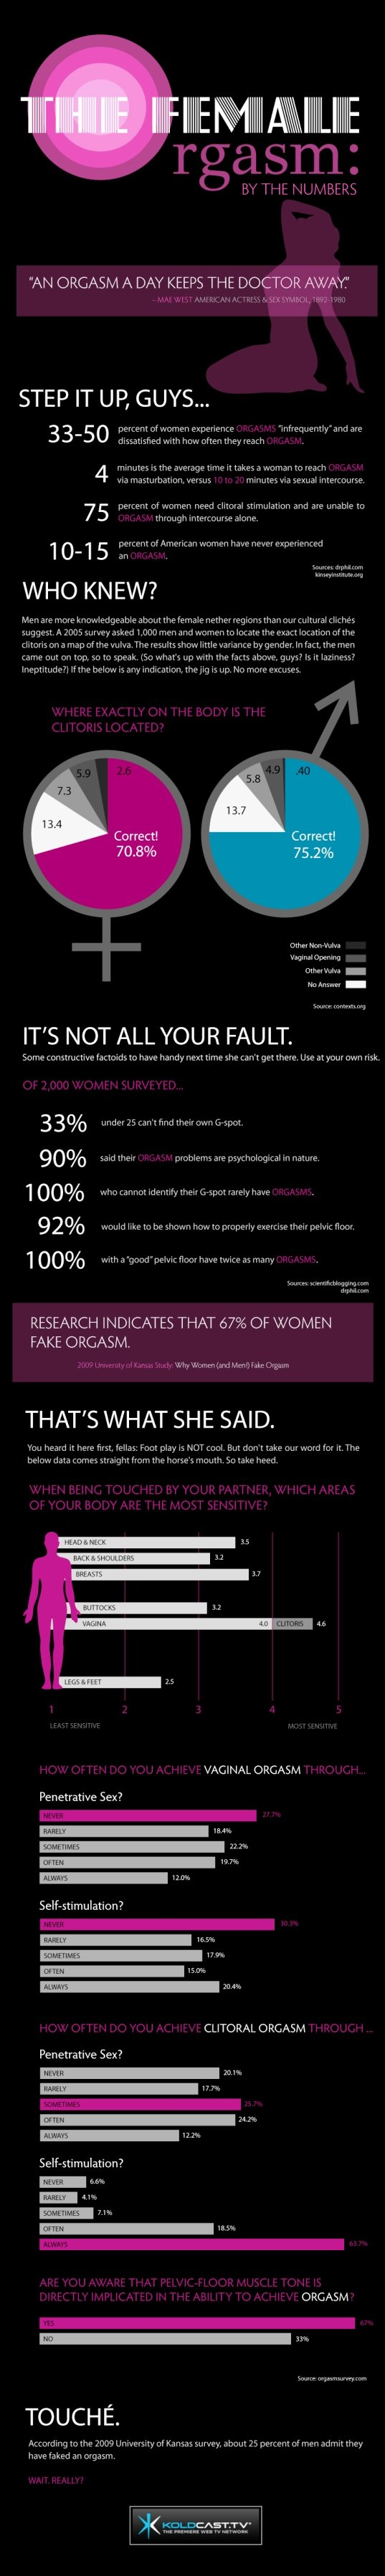 female orgasm by the numbers #infographic